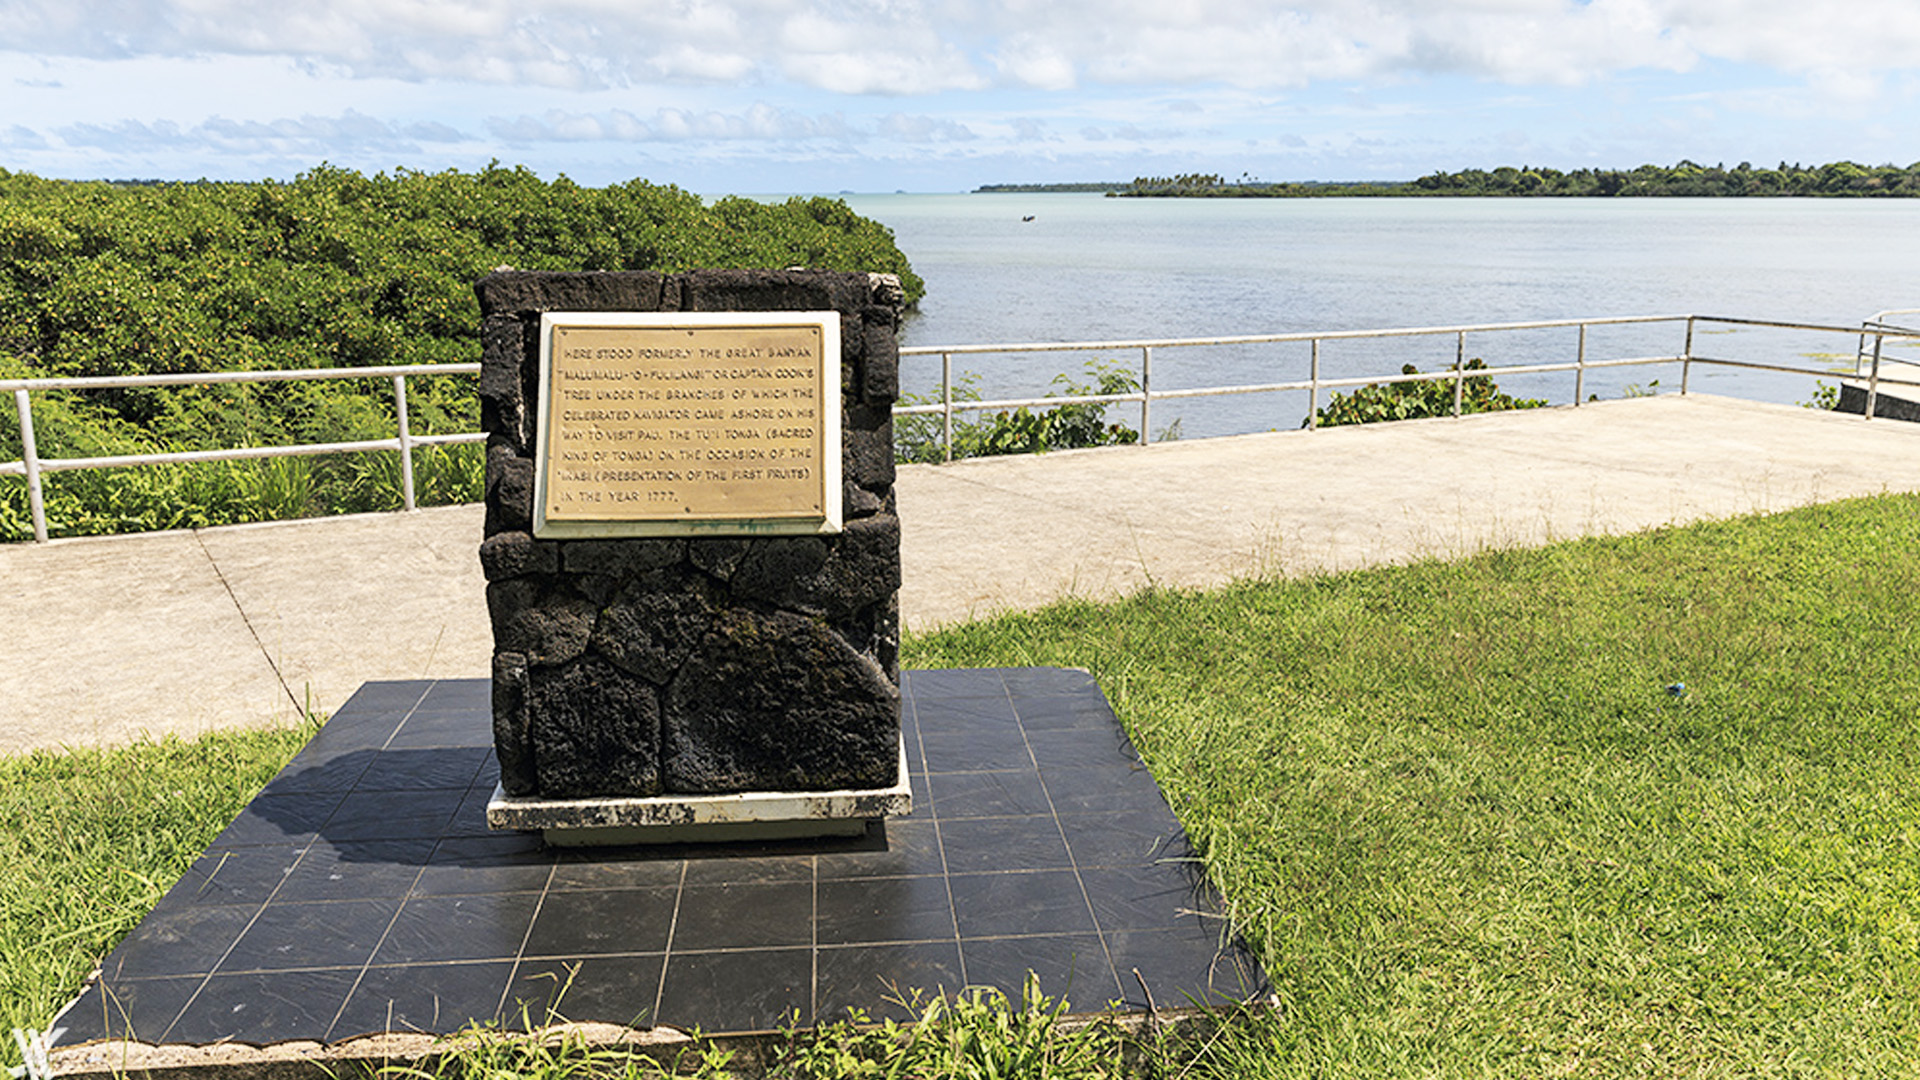 Captain Cook's Landing Place - Tonga